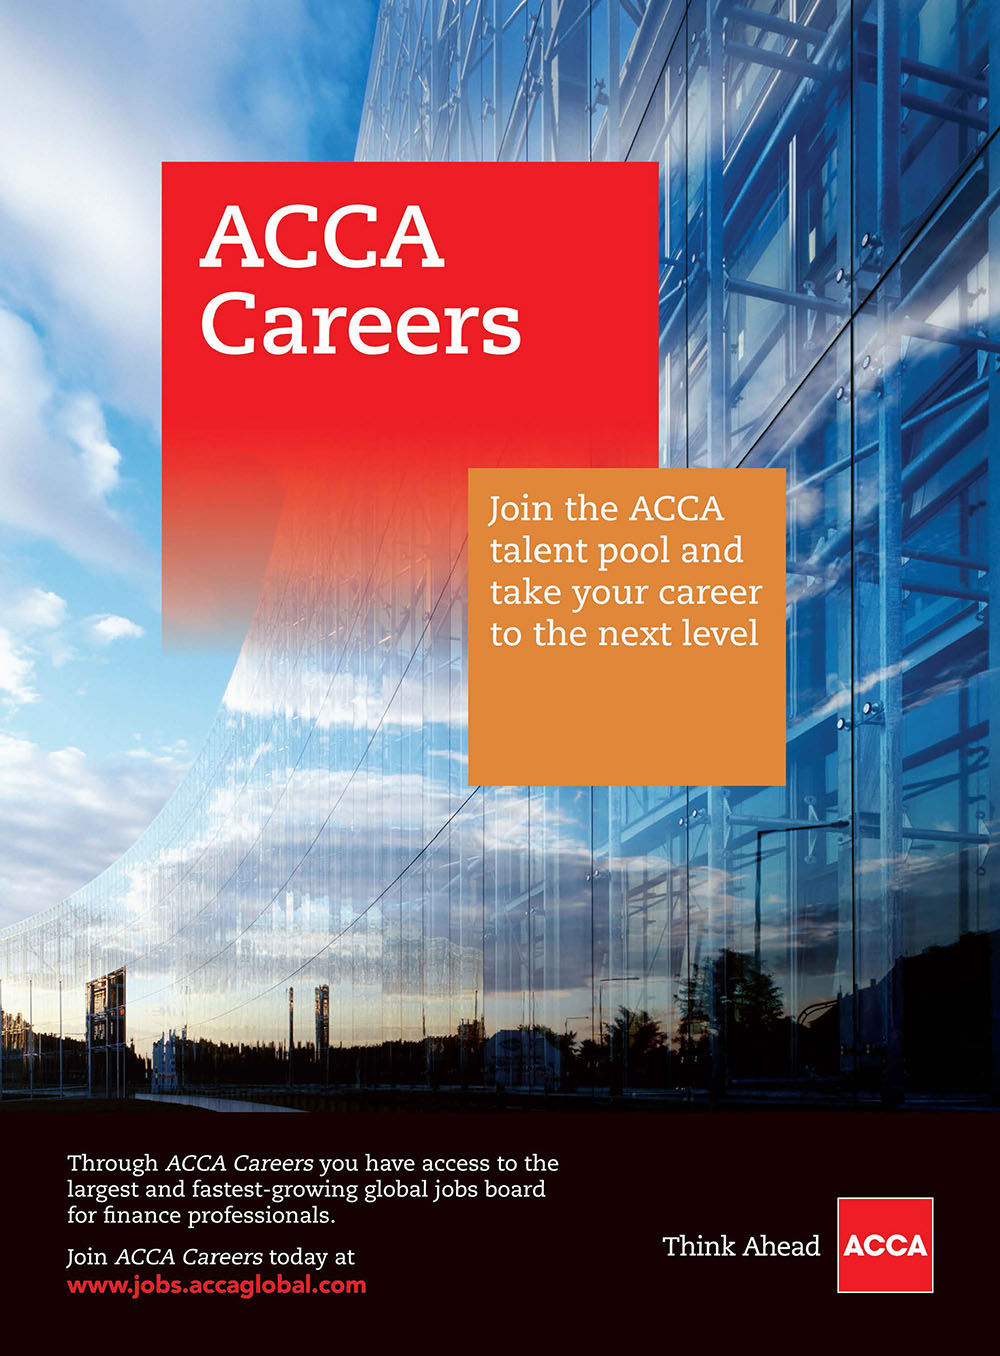 ACCA CAREERS SUMMIT 2016